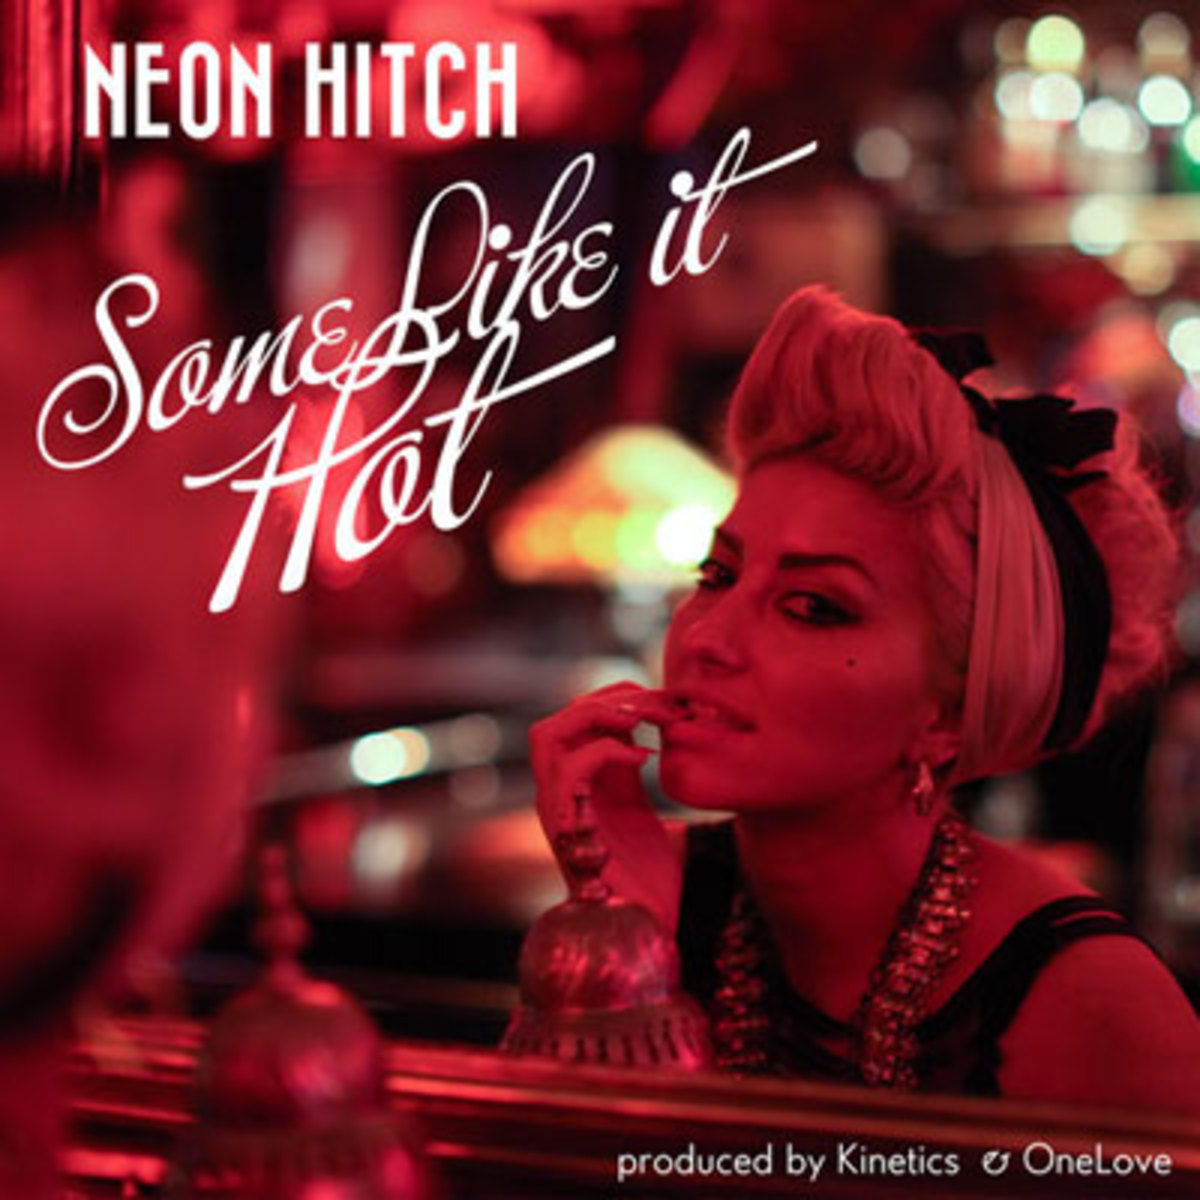 neonhitch-somelikeithot.jpg